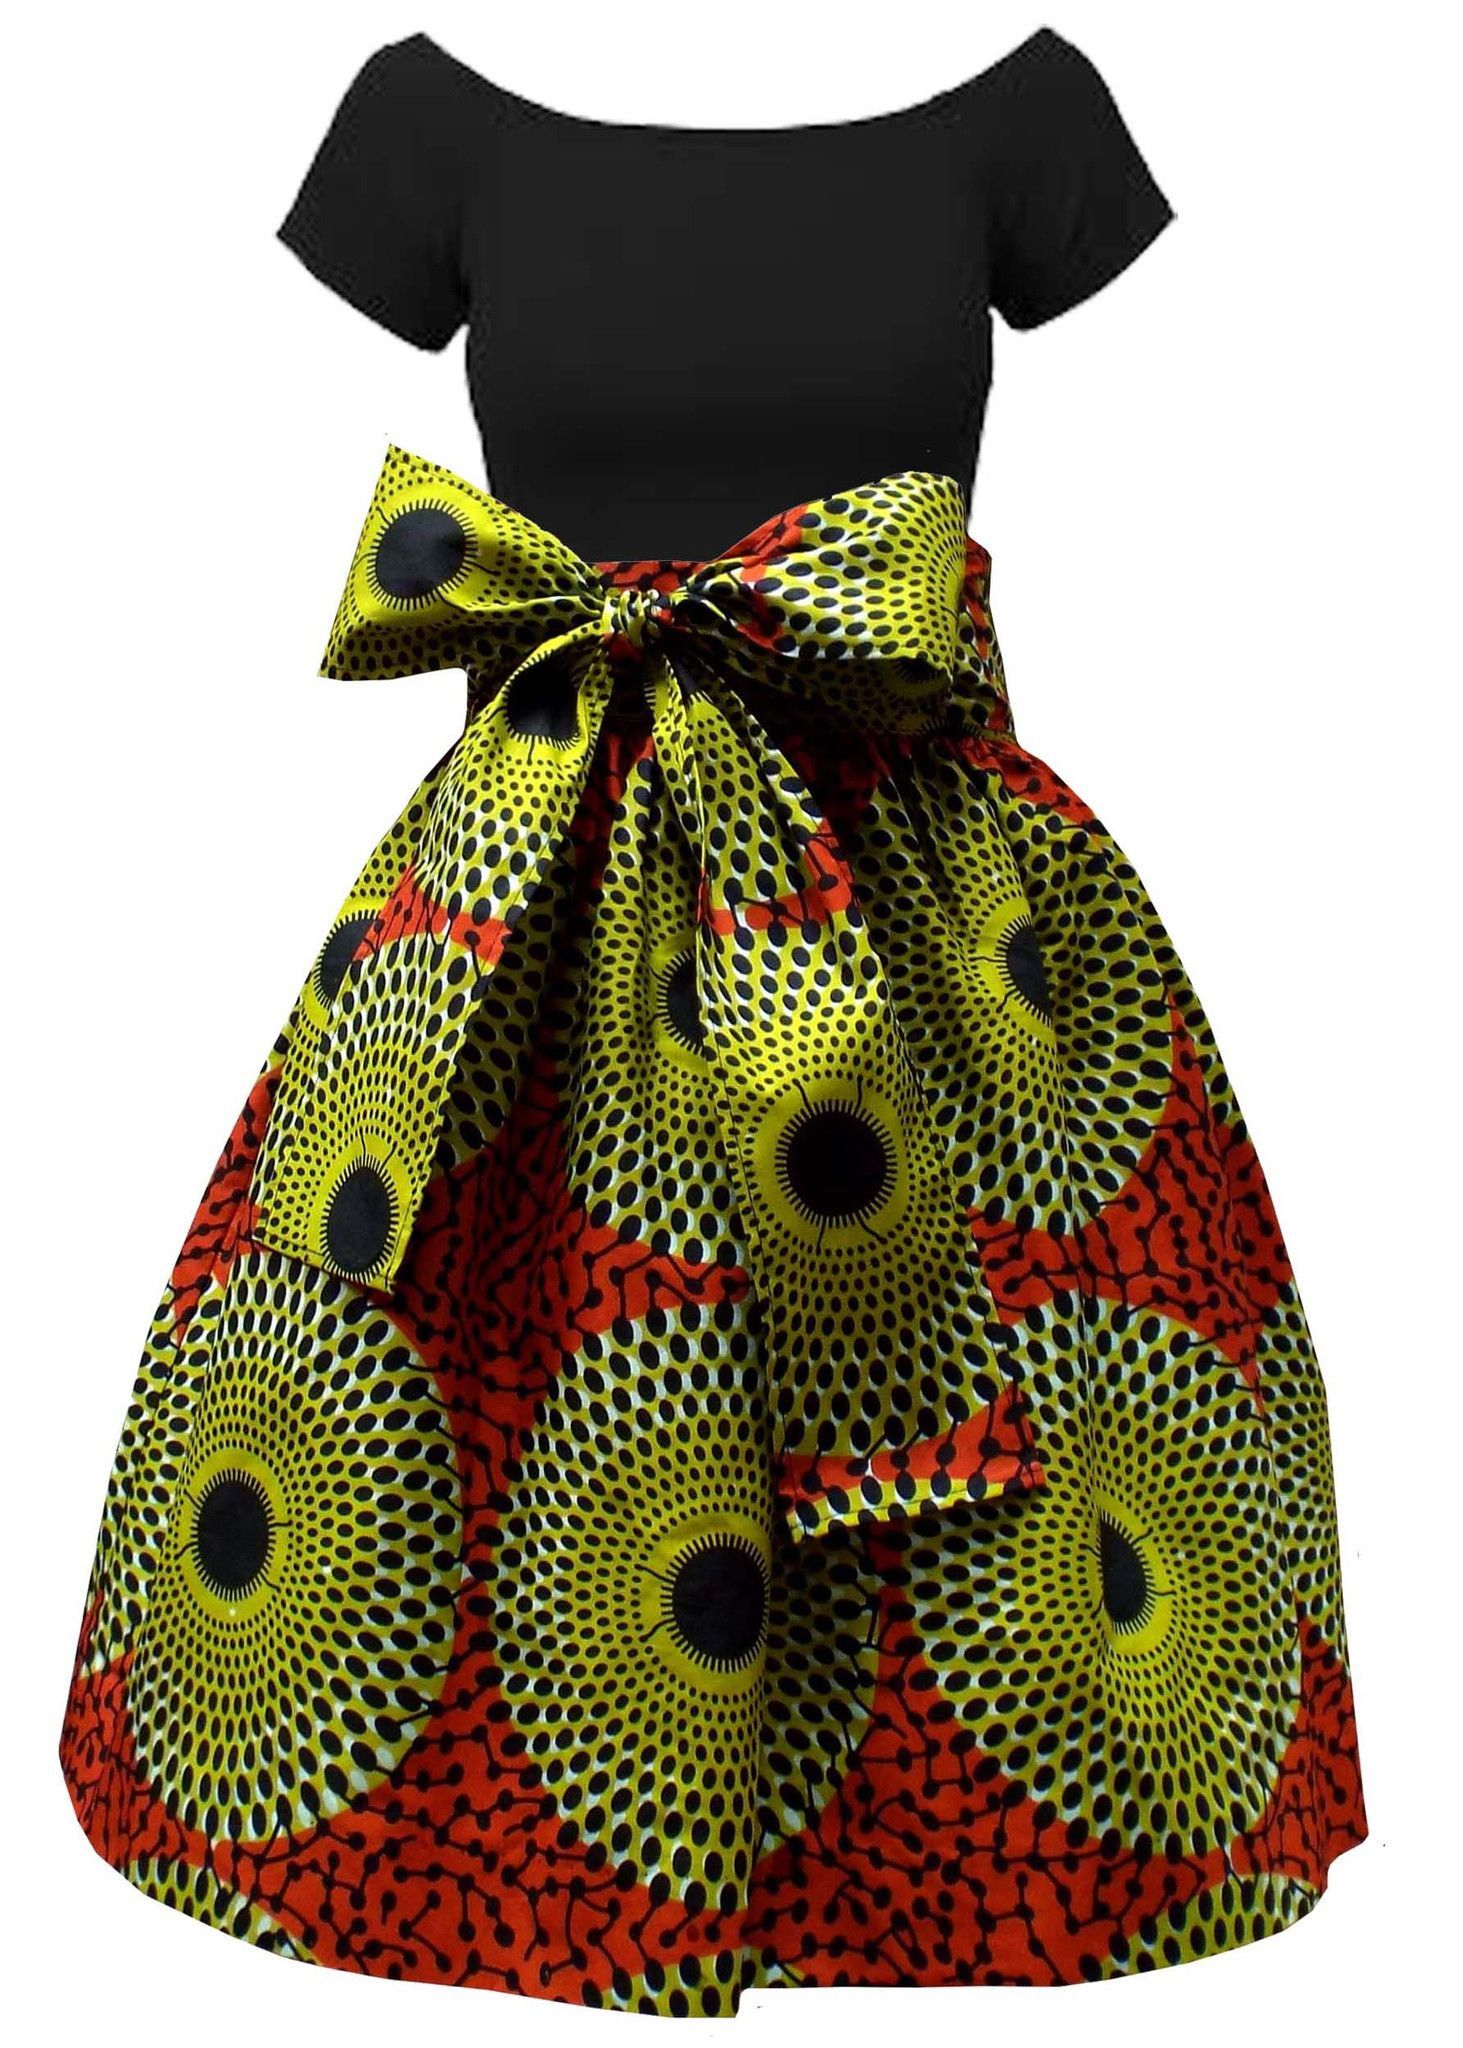 b8990bc9b2635 Meni African Print High Waist Full Skirt (Dark Orange/Green ...